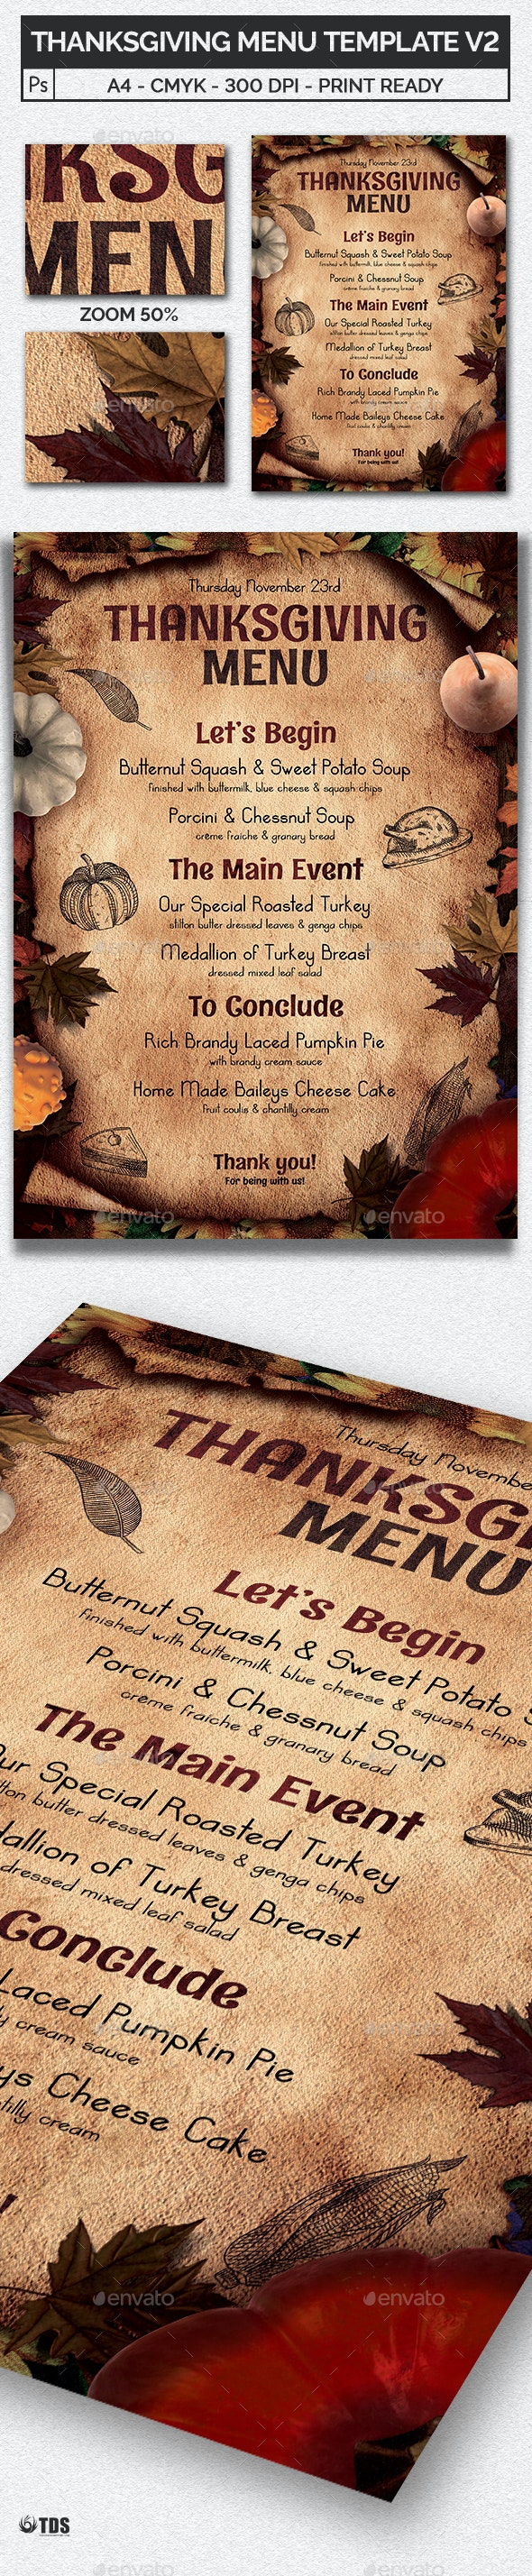 Thanksgiving Menu Template V2 - Restaurant Flyers